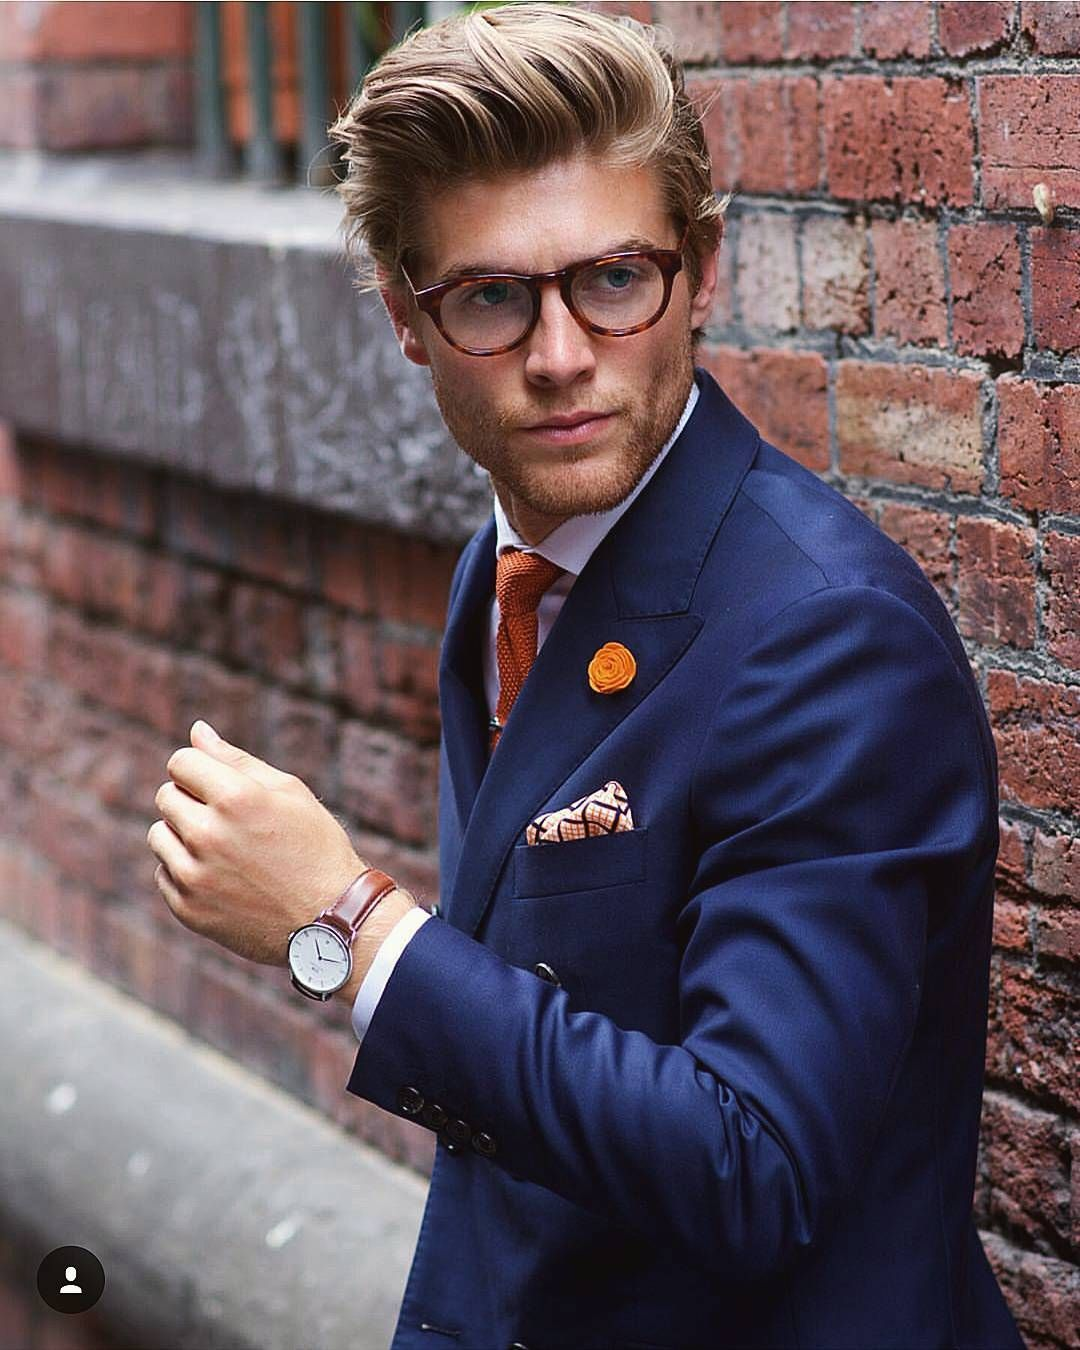 Classy and dandy samwines is one cool guy what do you think about